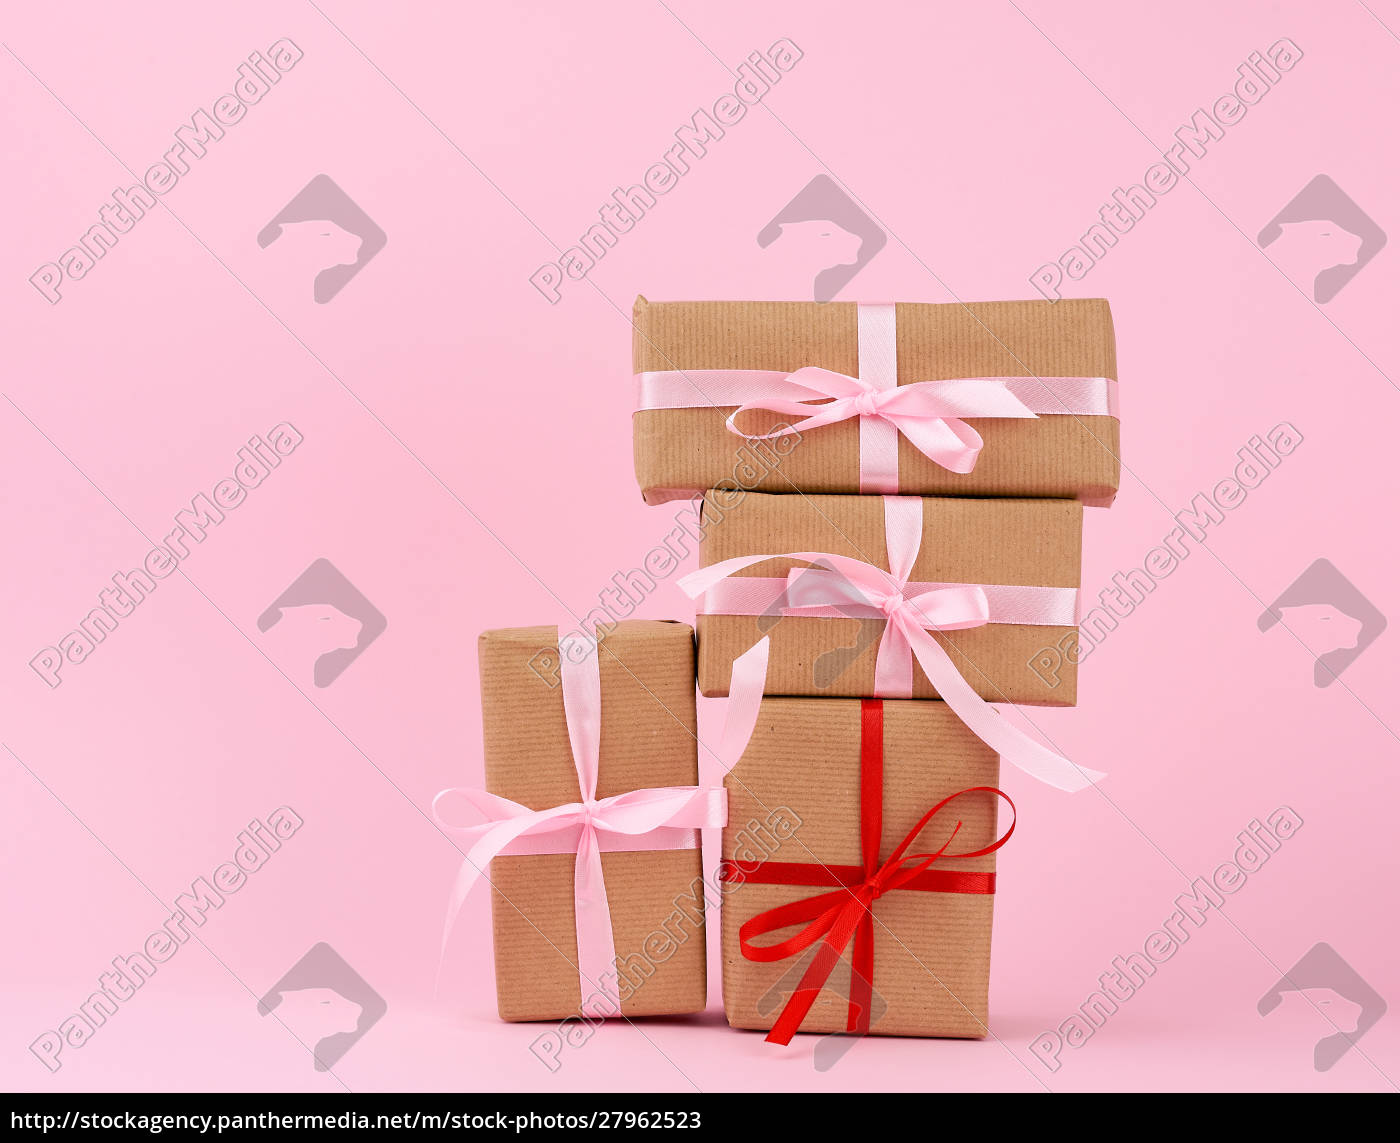 gift, box, paper, brown, on, pink - 27962523